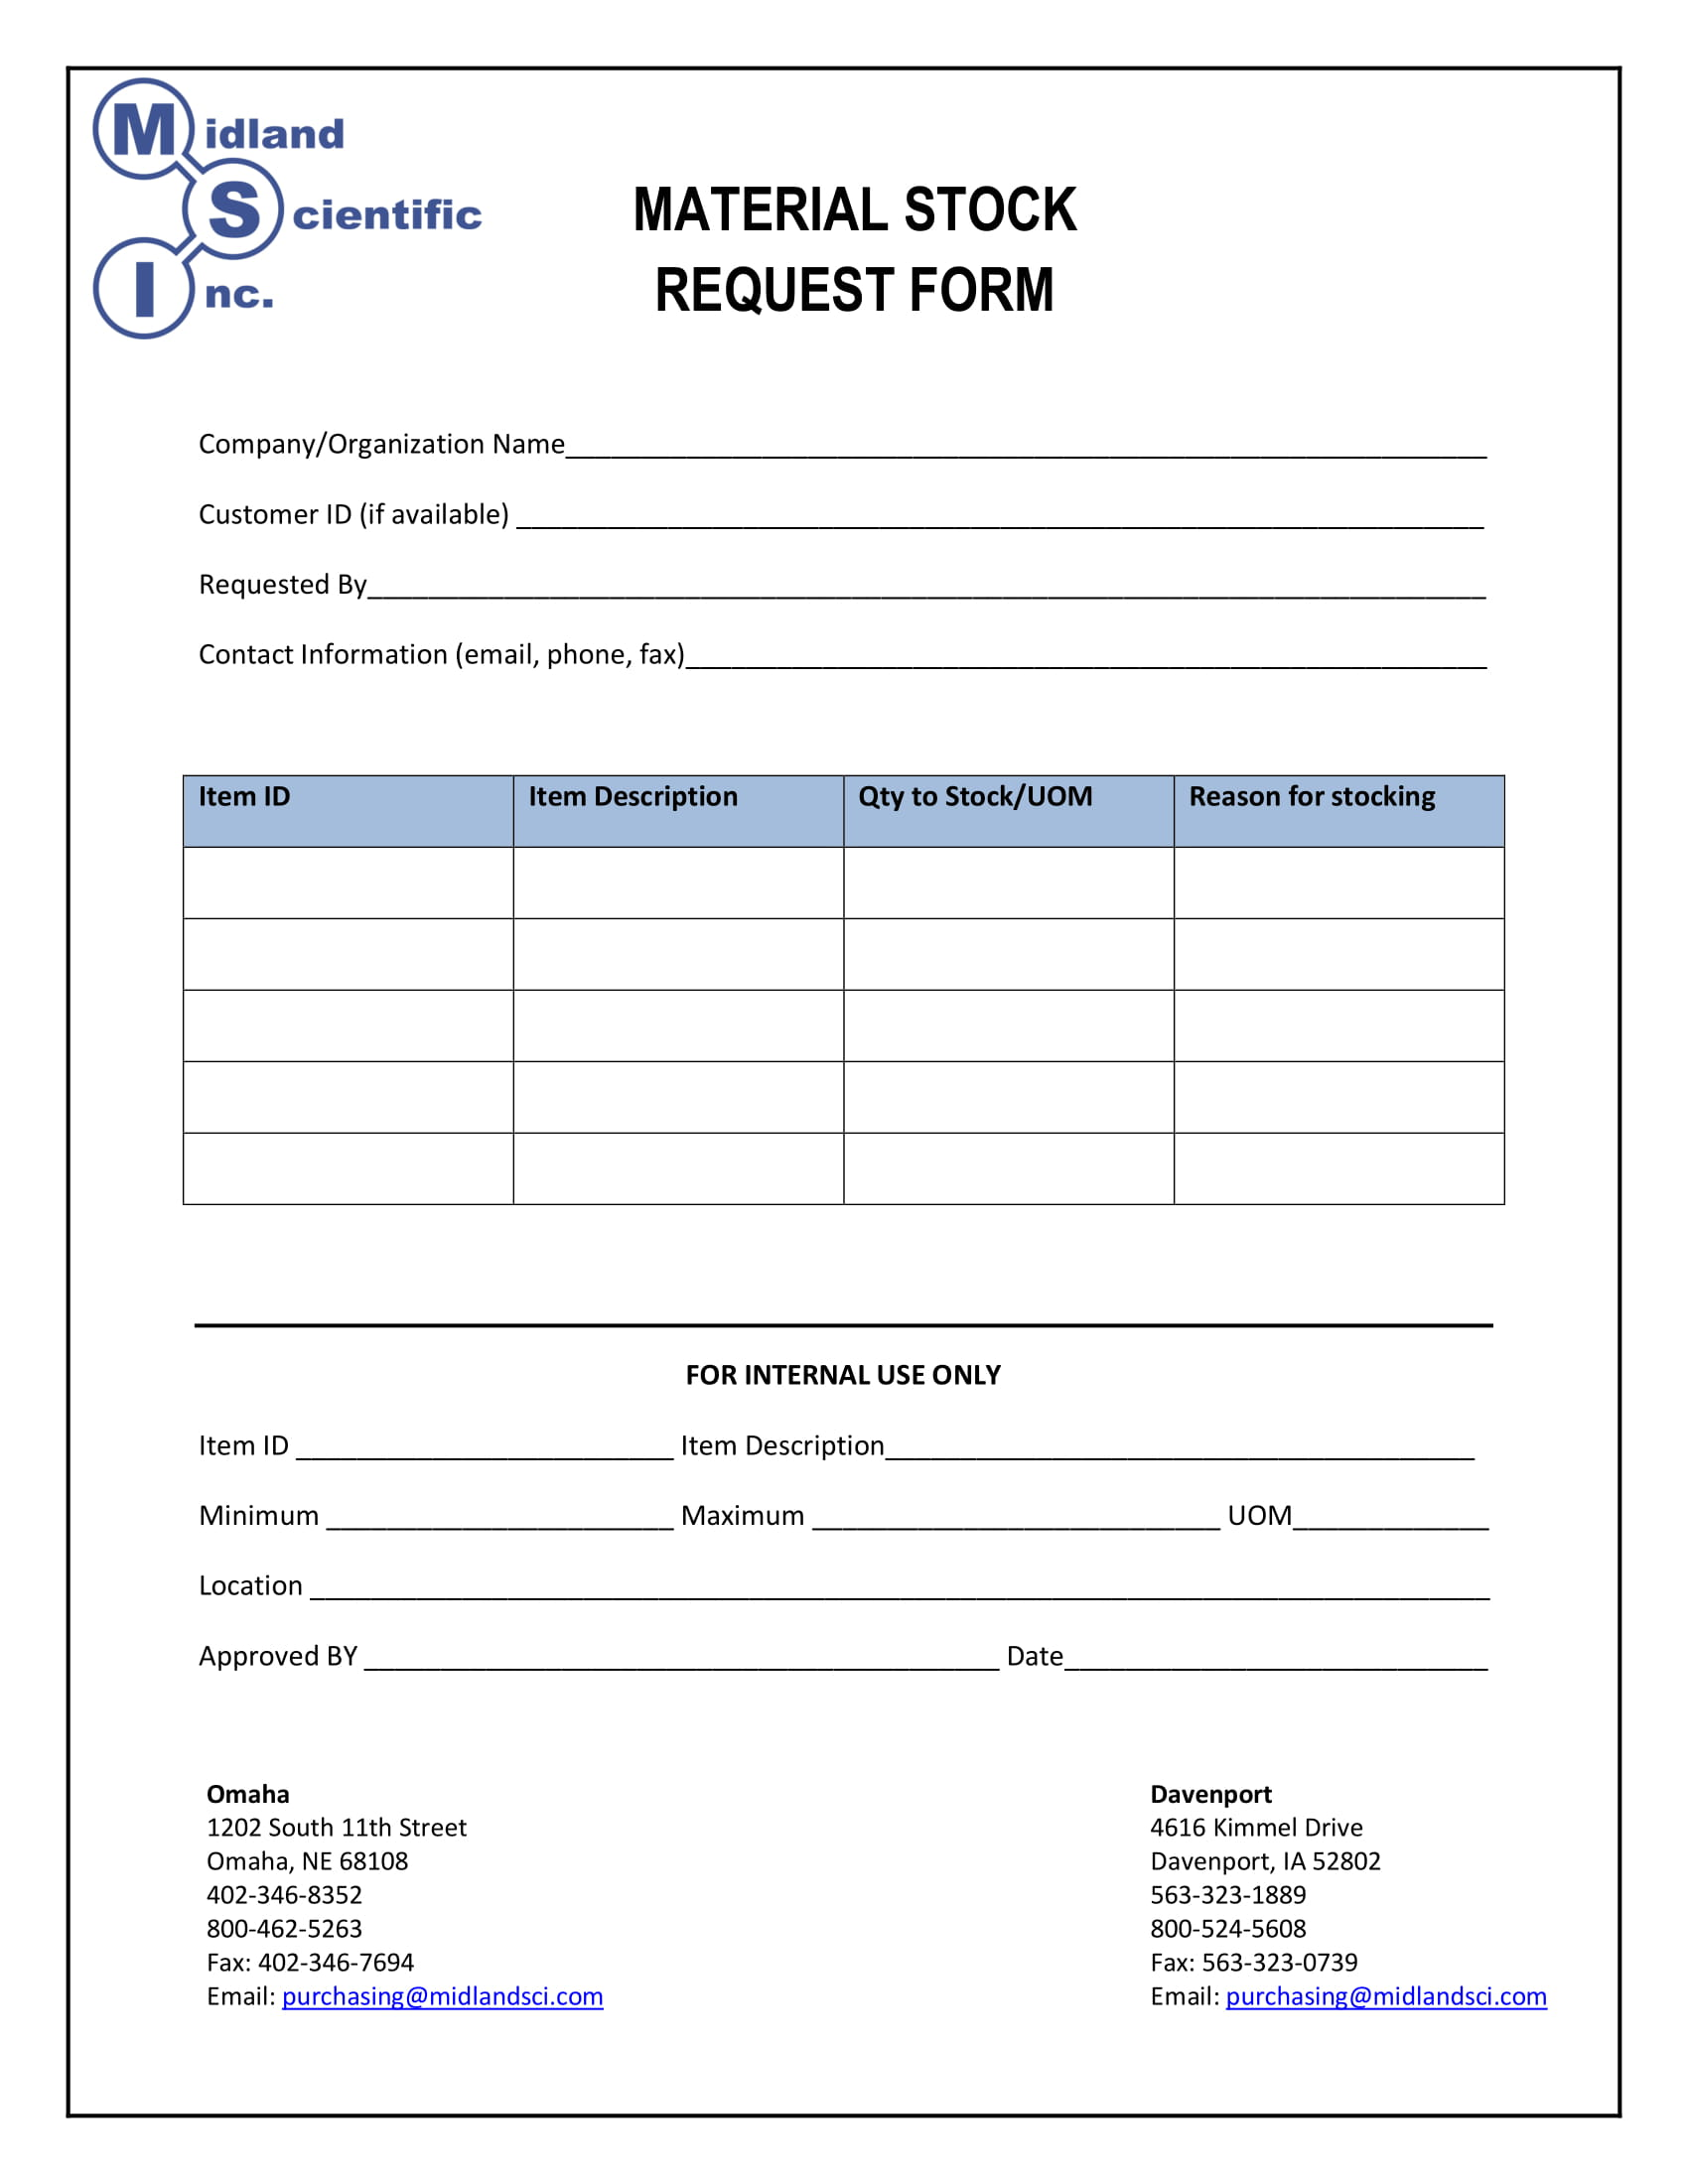 Material request form design templates for Stock request form template